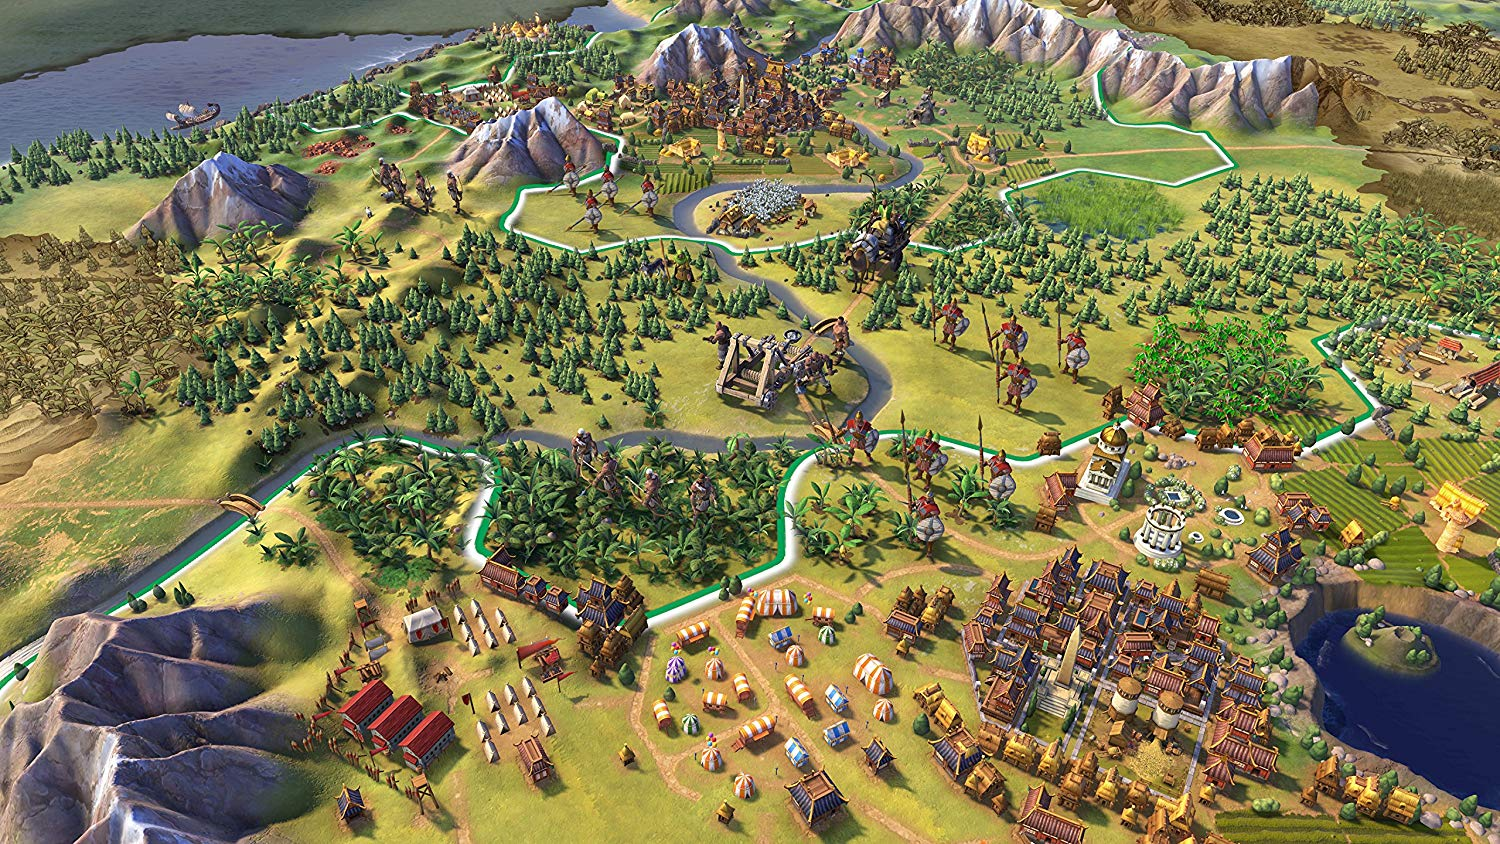 Best PC Strategy Games to Play in 2019 - Top Modern RTS \u0026 TBS Games